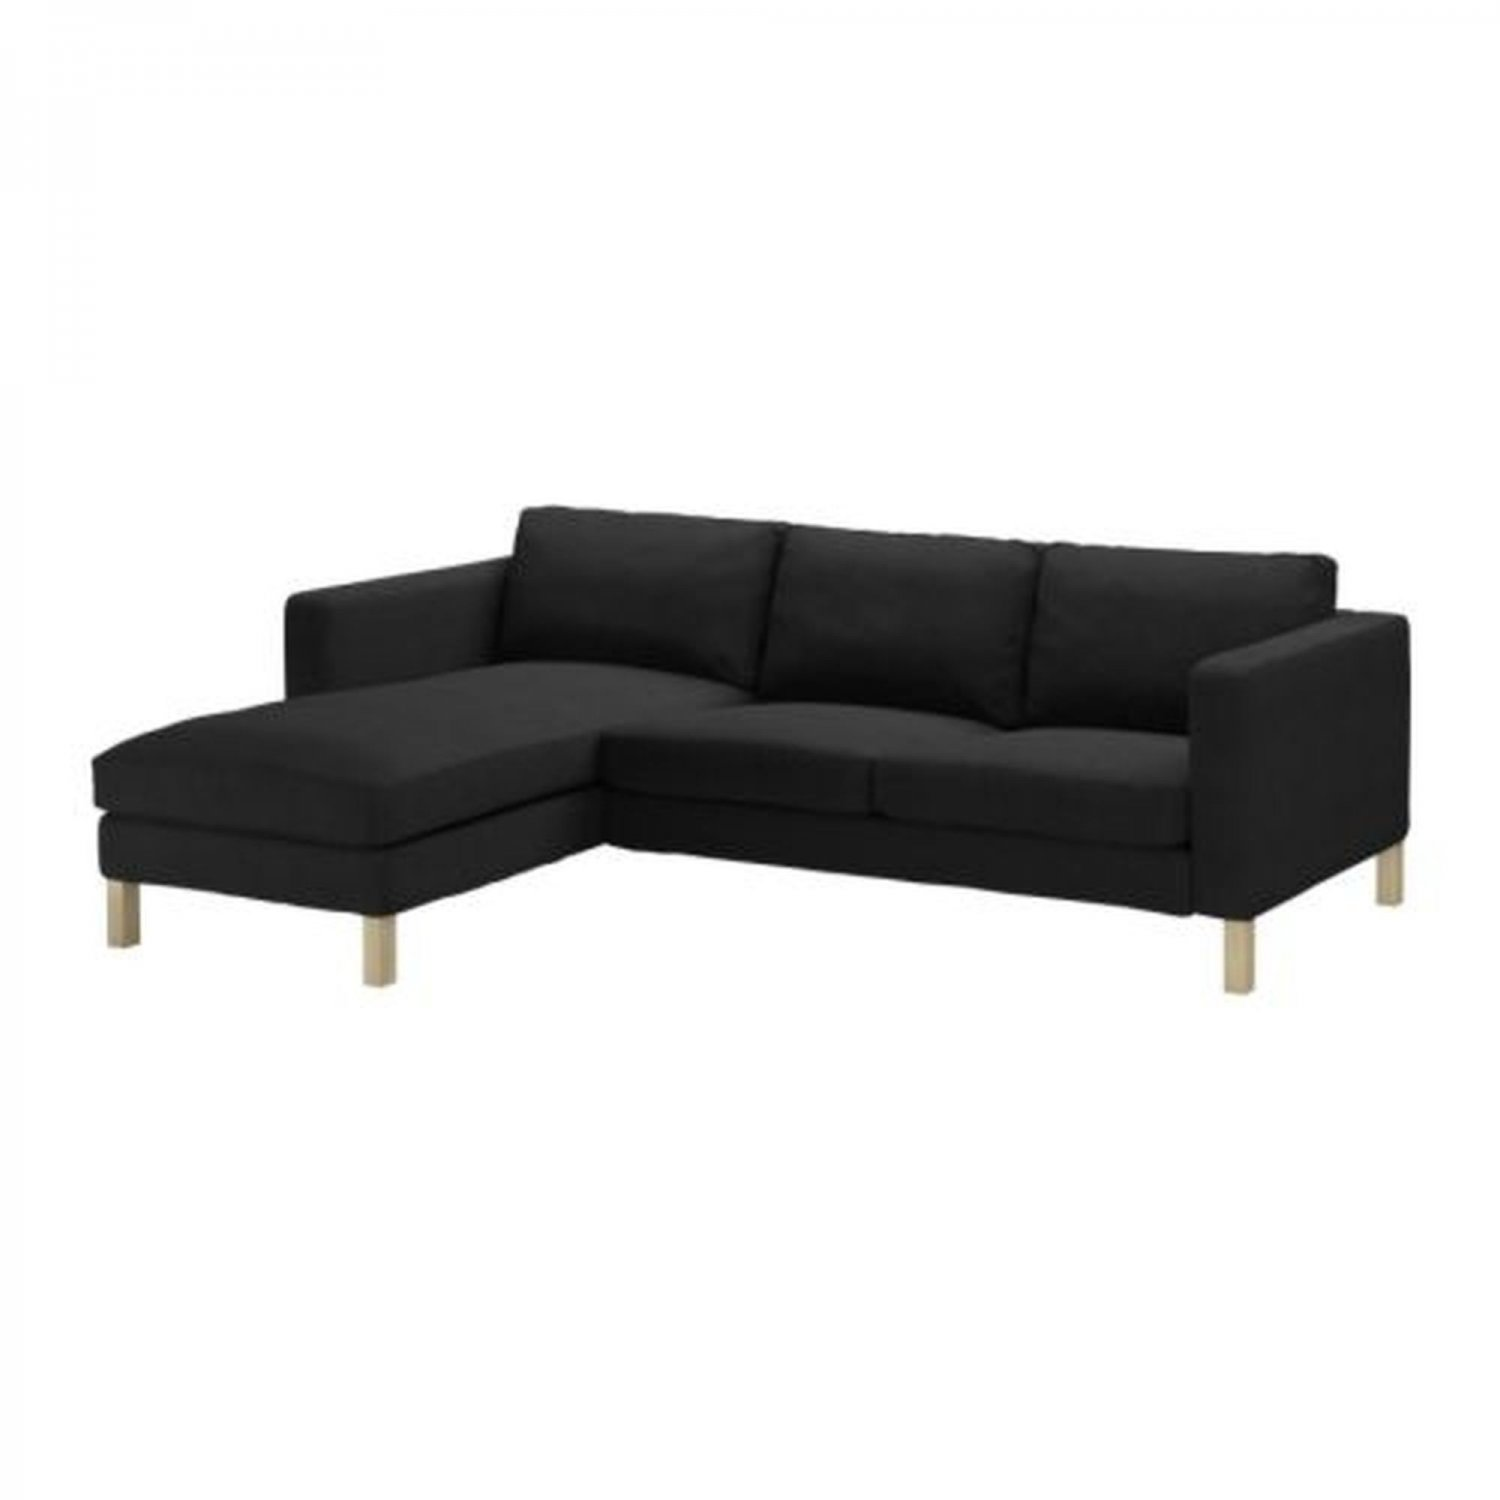 ikea karlstad 2 seat loveseat sofa and chaise slipcover. Black Bedroom Furniture Sets. Home Design Ideas